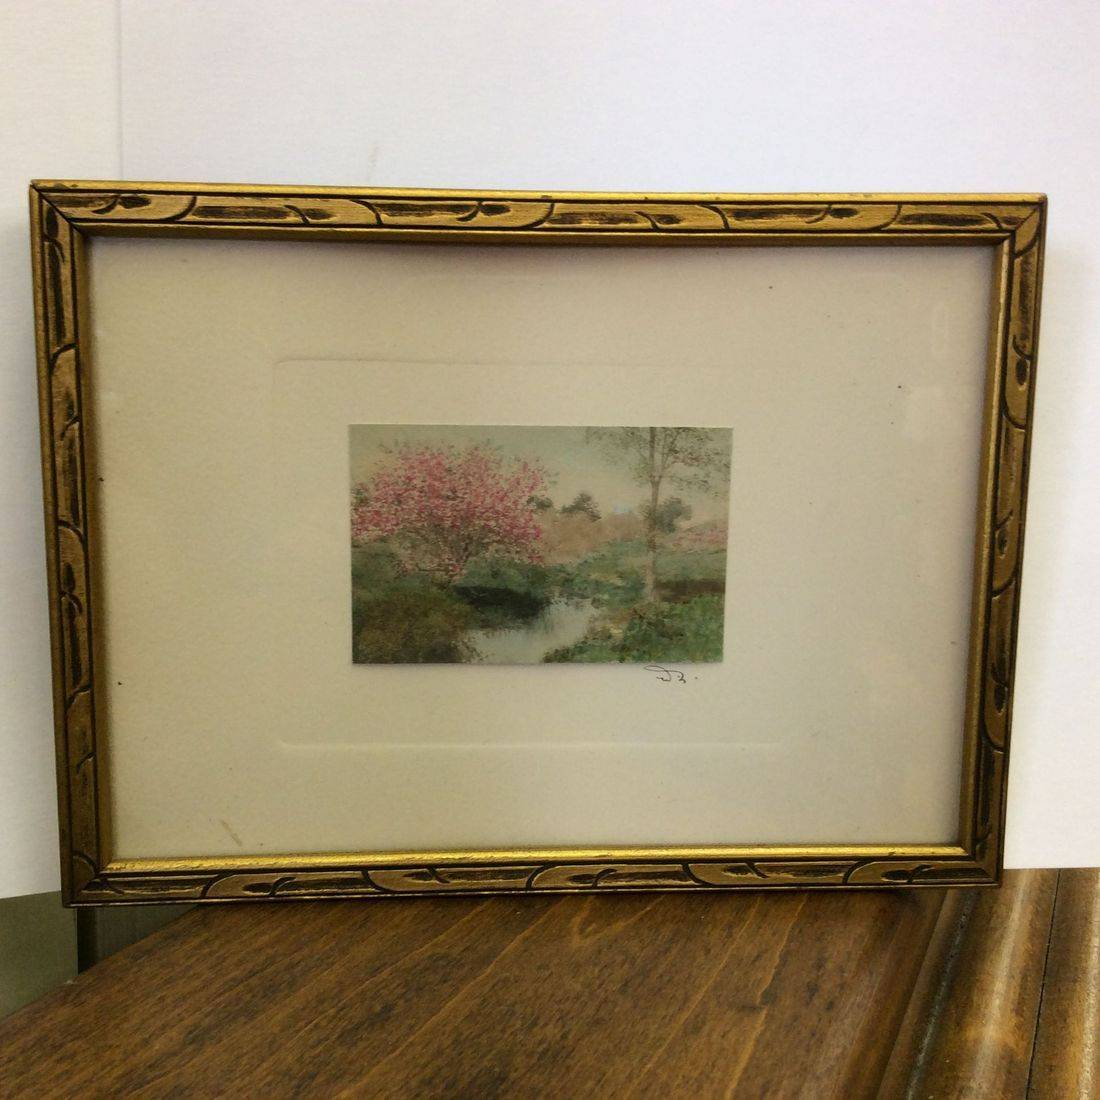 """Early 1900's Wallace Nutting  """"Blossoming Tree by a Creek"""" Hand-Tinted Mini Print  3"""" x 2""""  frame:  7-1/2"""" x 5-1/2""""   $25.00"""